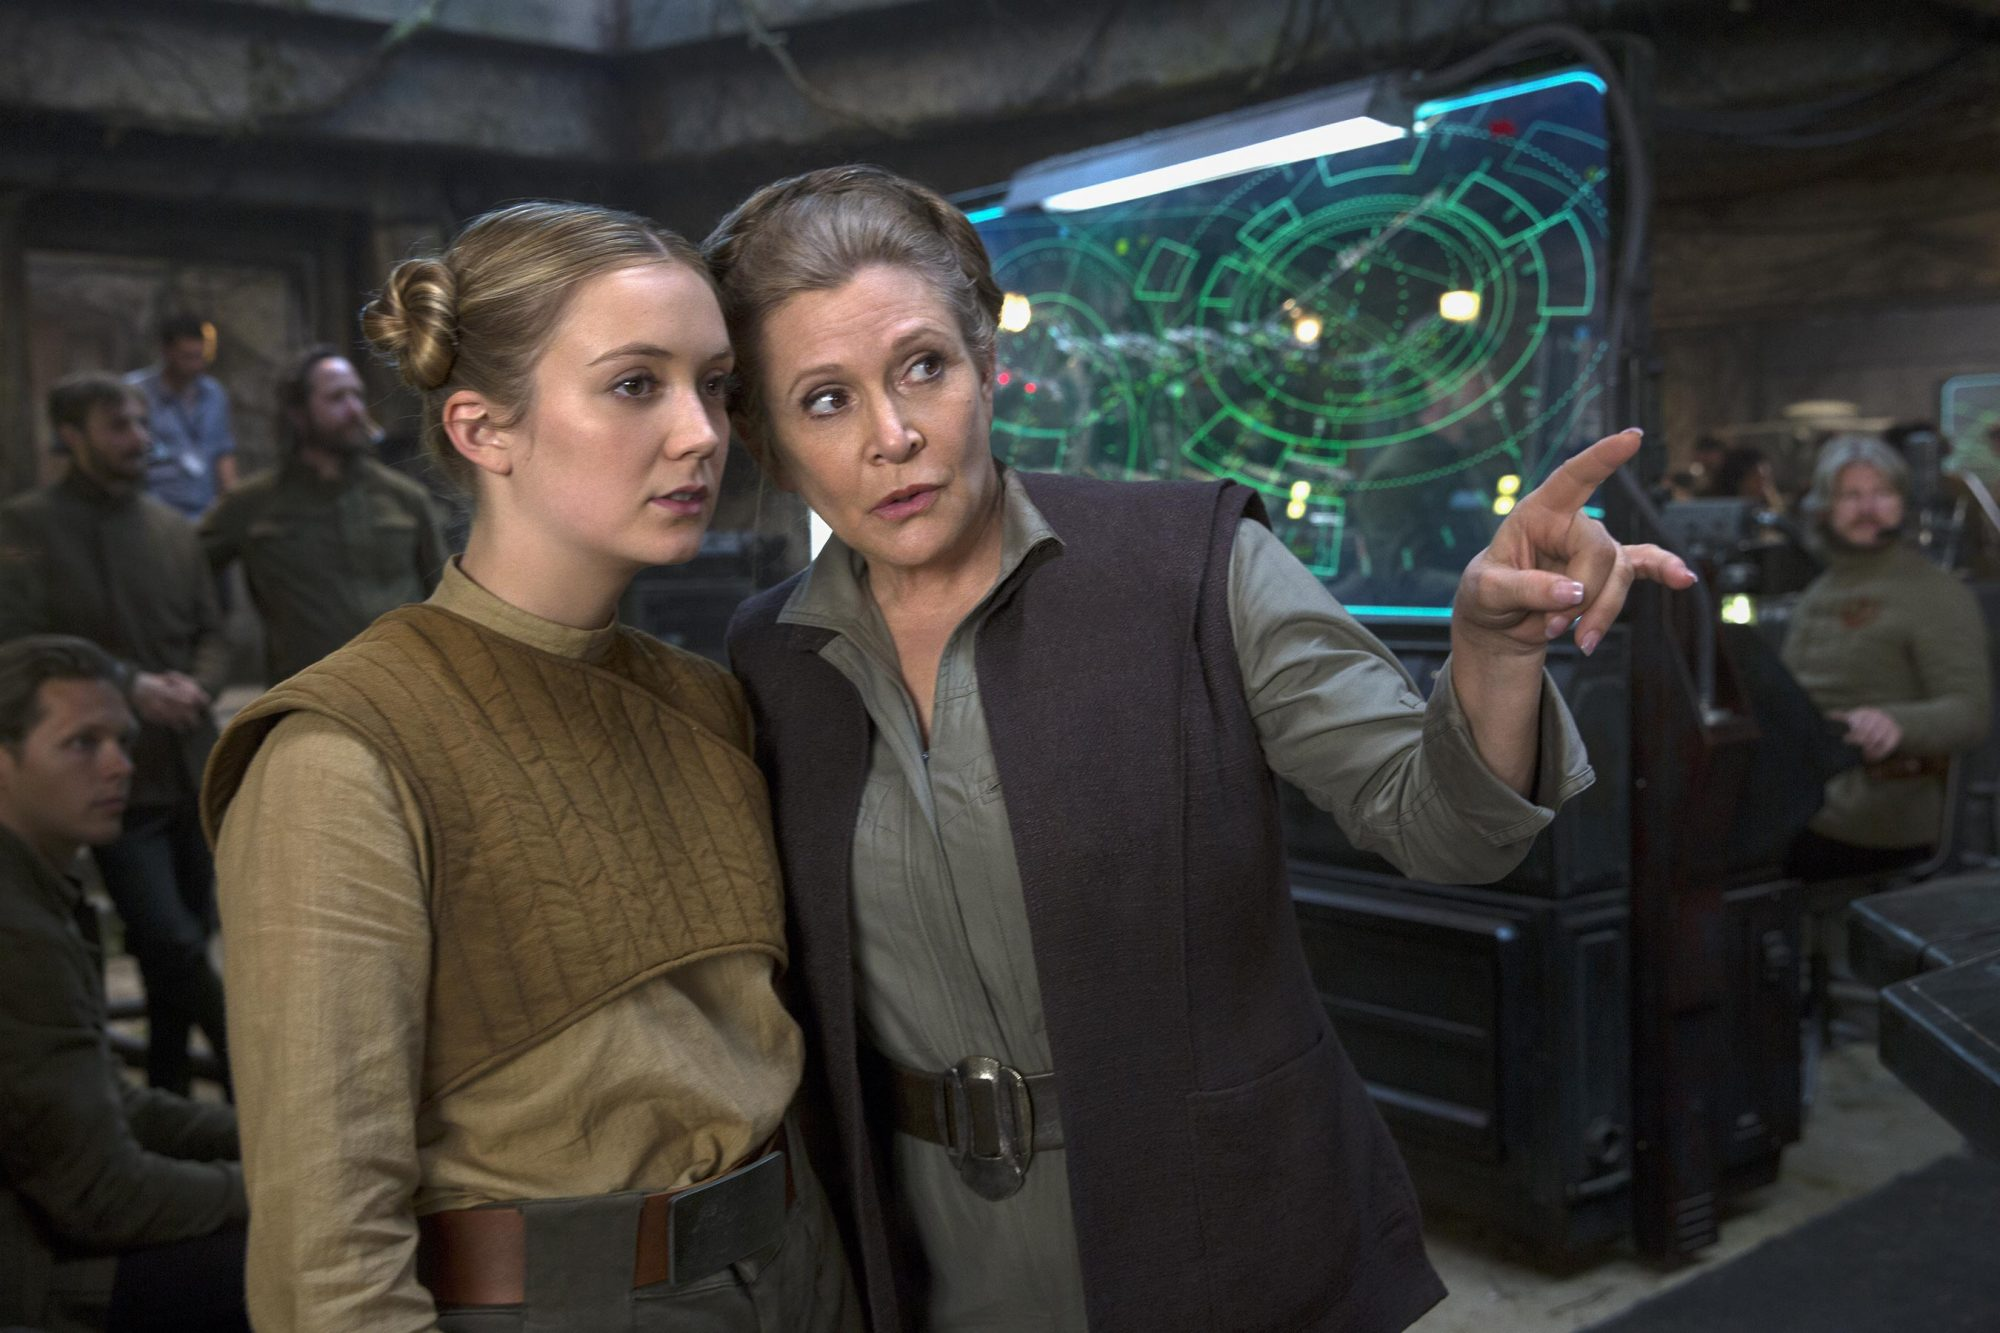 Star Wars: The Force Awakens (2015)Billie Lourd (L) and Carrie Fisher